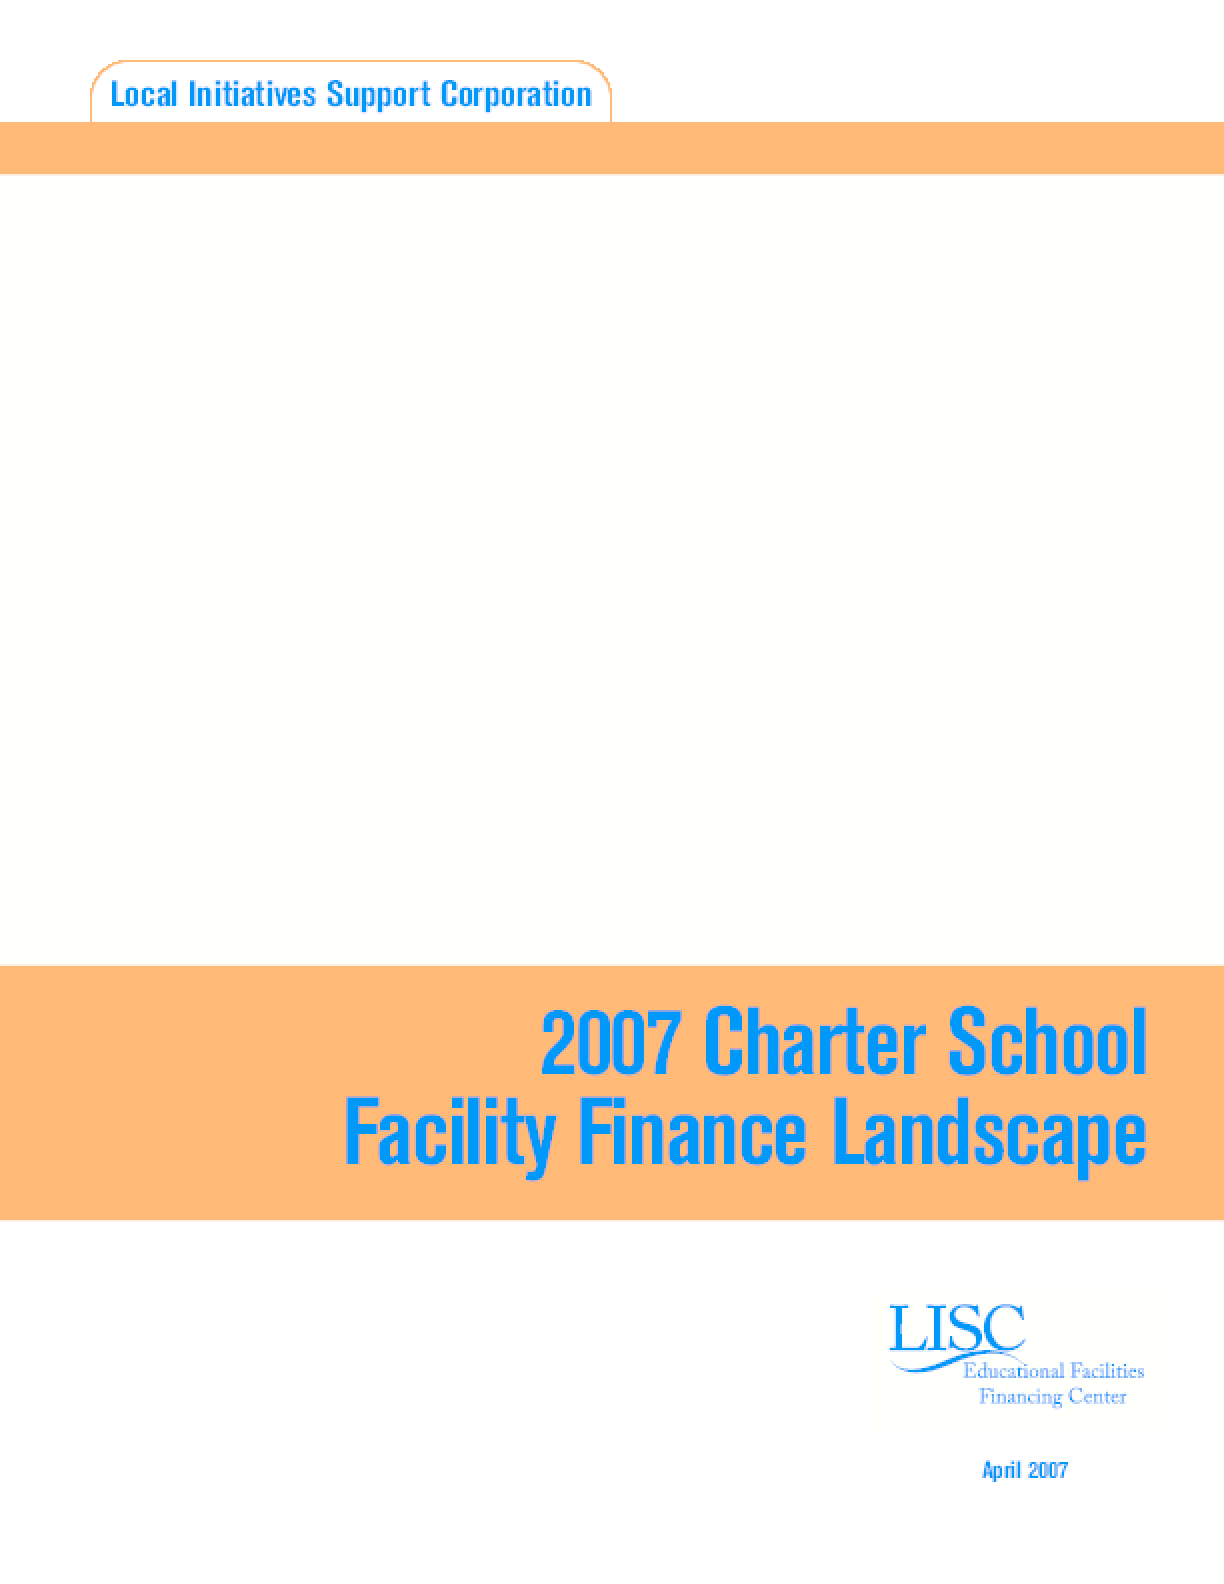 2007 Charter School Facility Finance Landscape